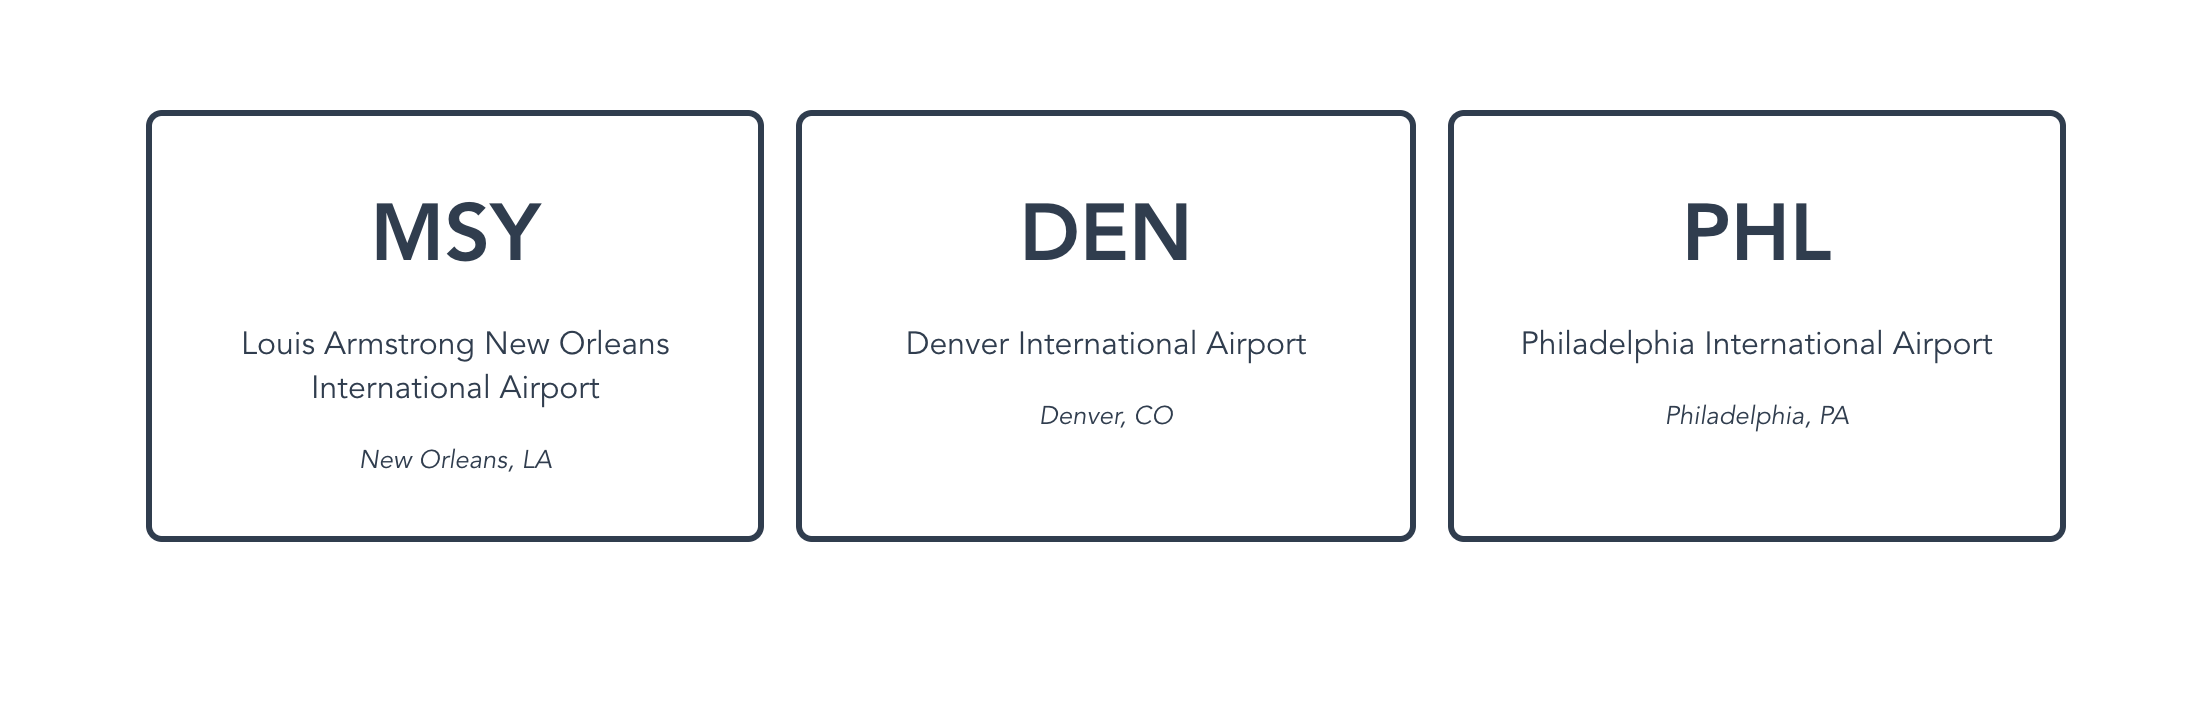 Styled cards containing airport data from the development dataset.